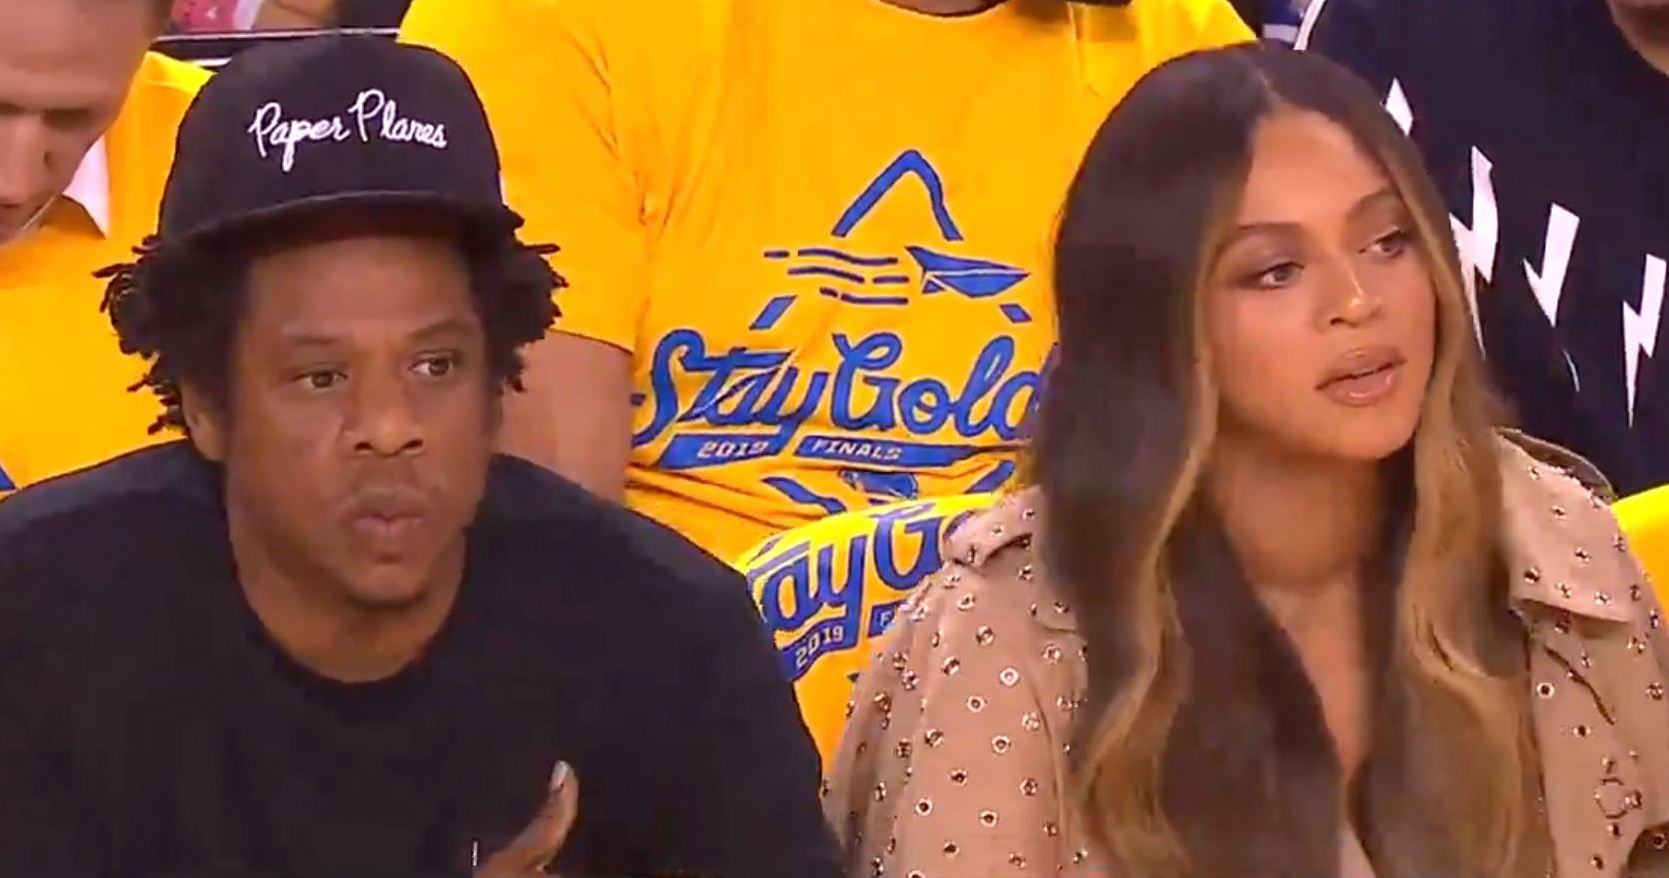 Beyonce appears unamused as woman leans over her to talk